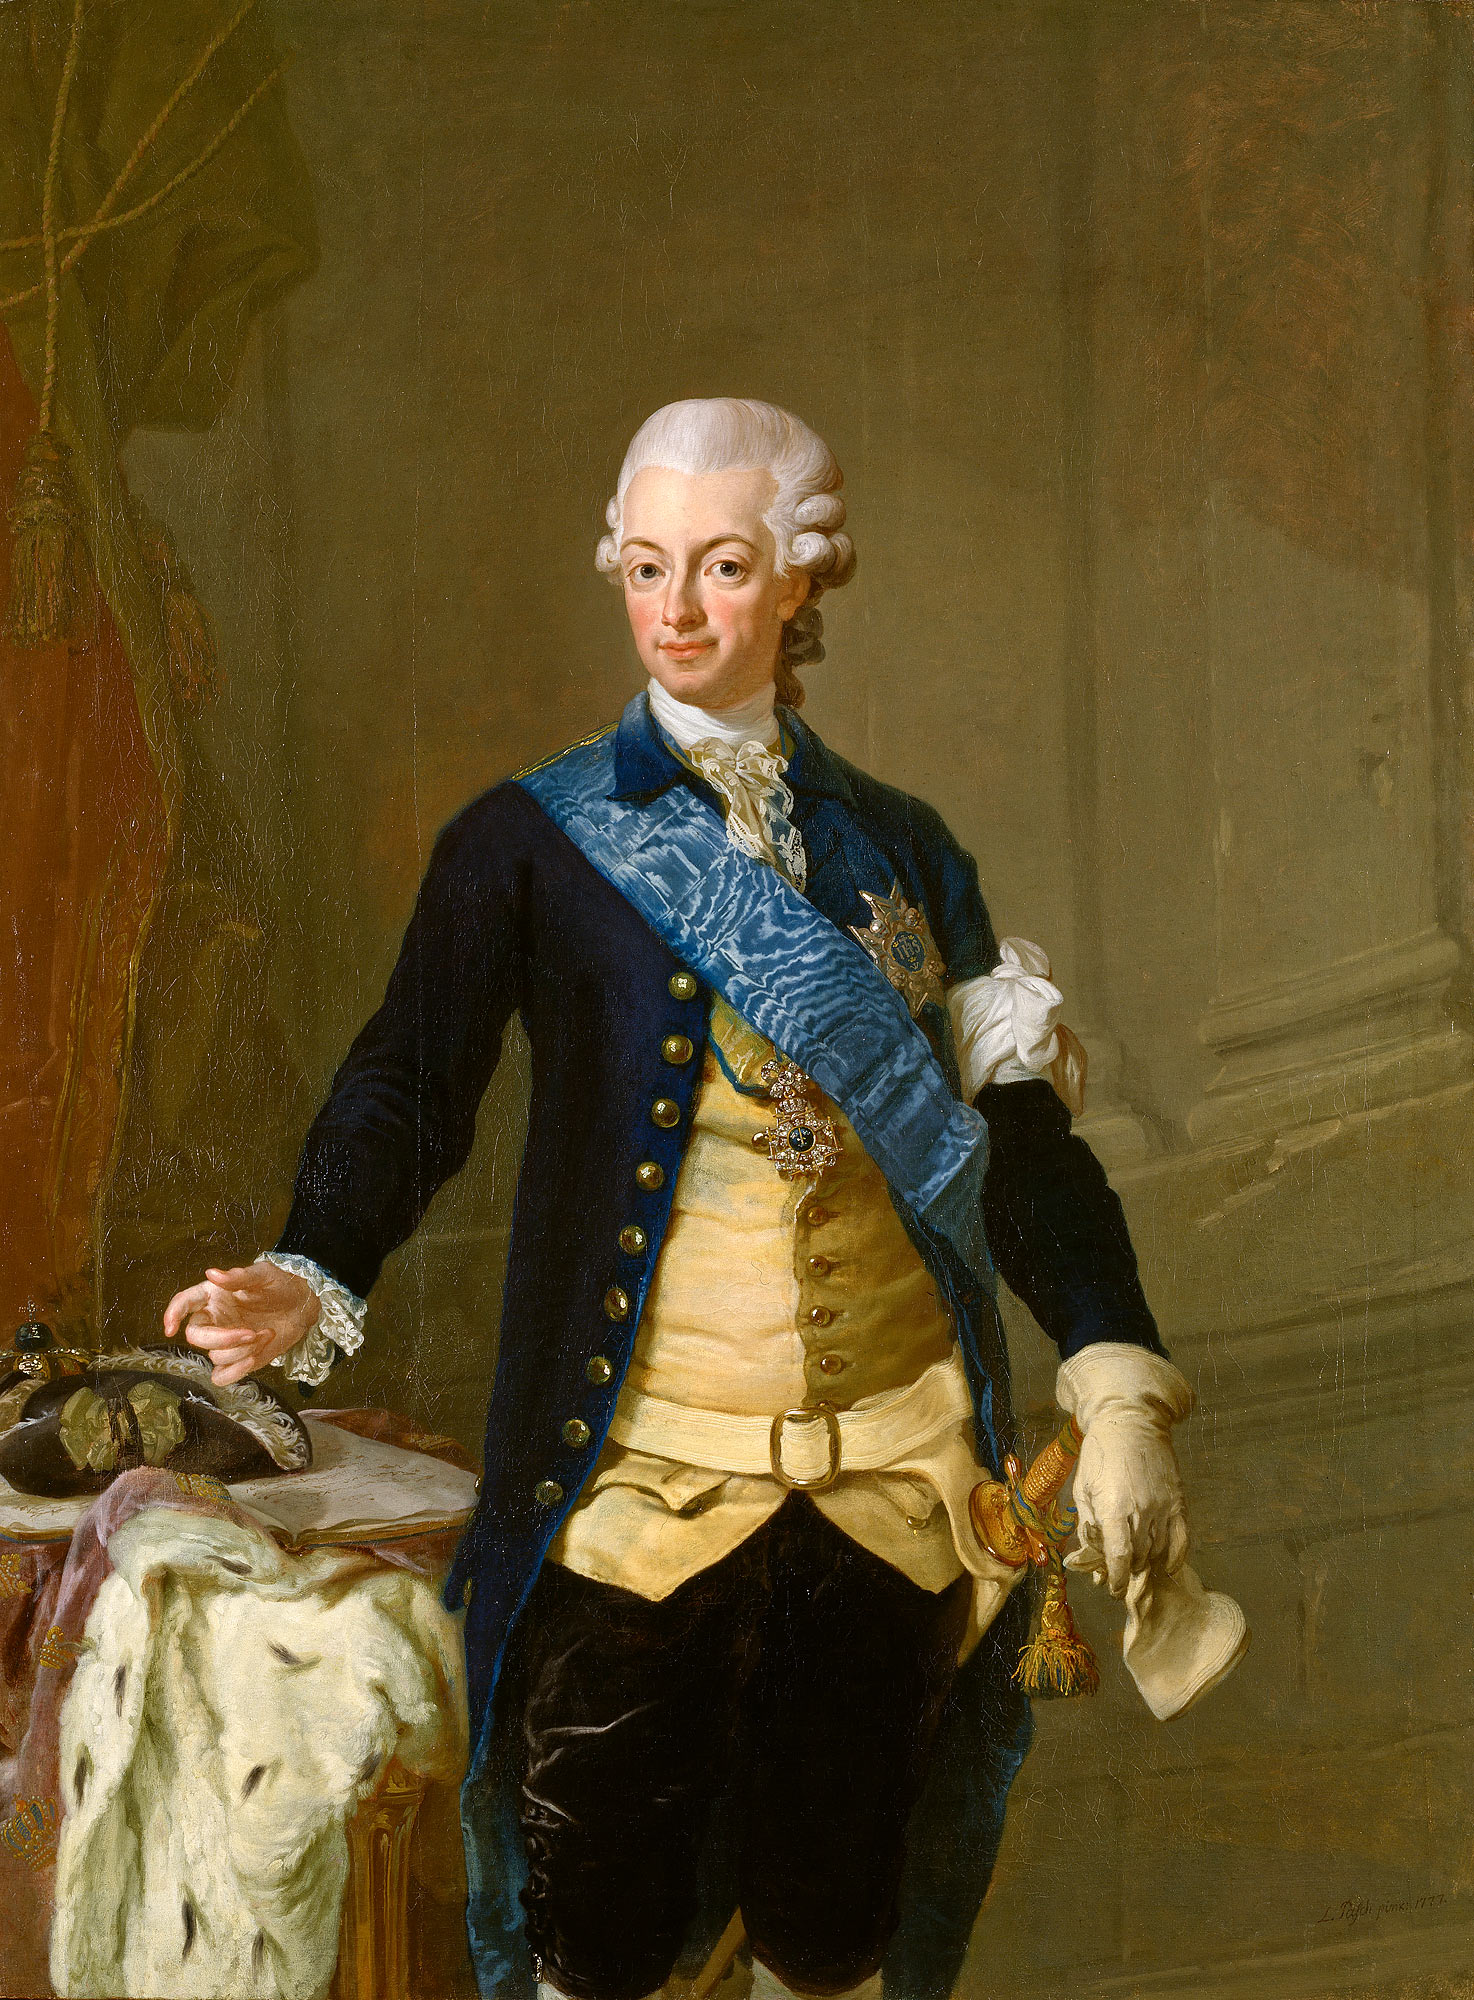 Gustav III Sweden, via Wikimedia Commons